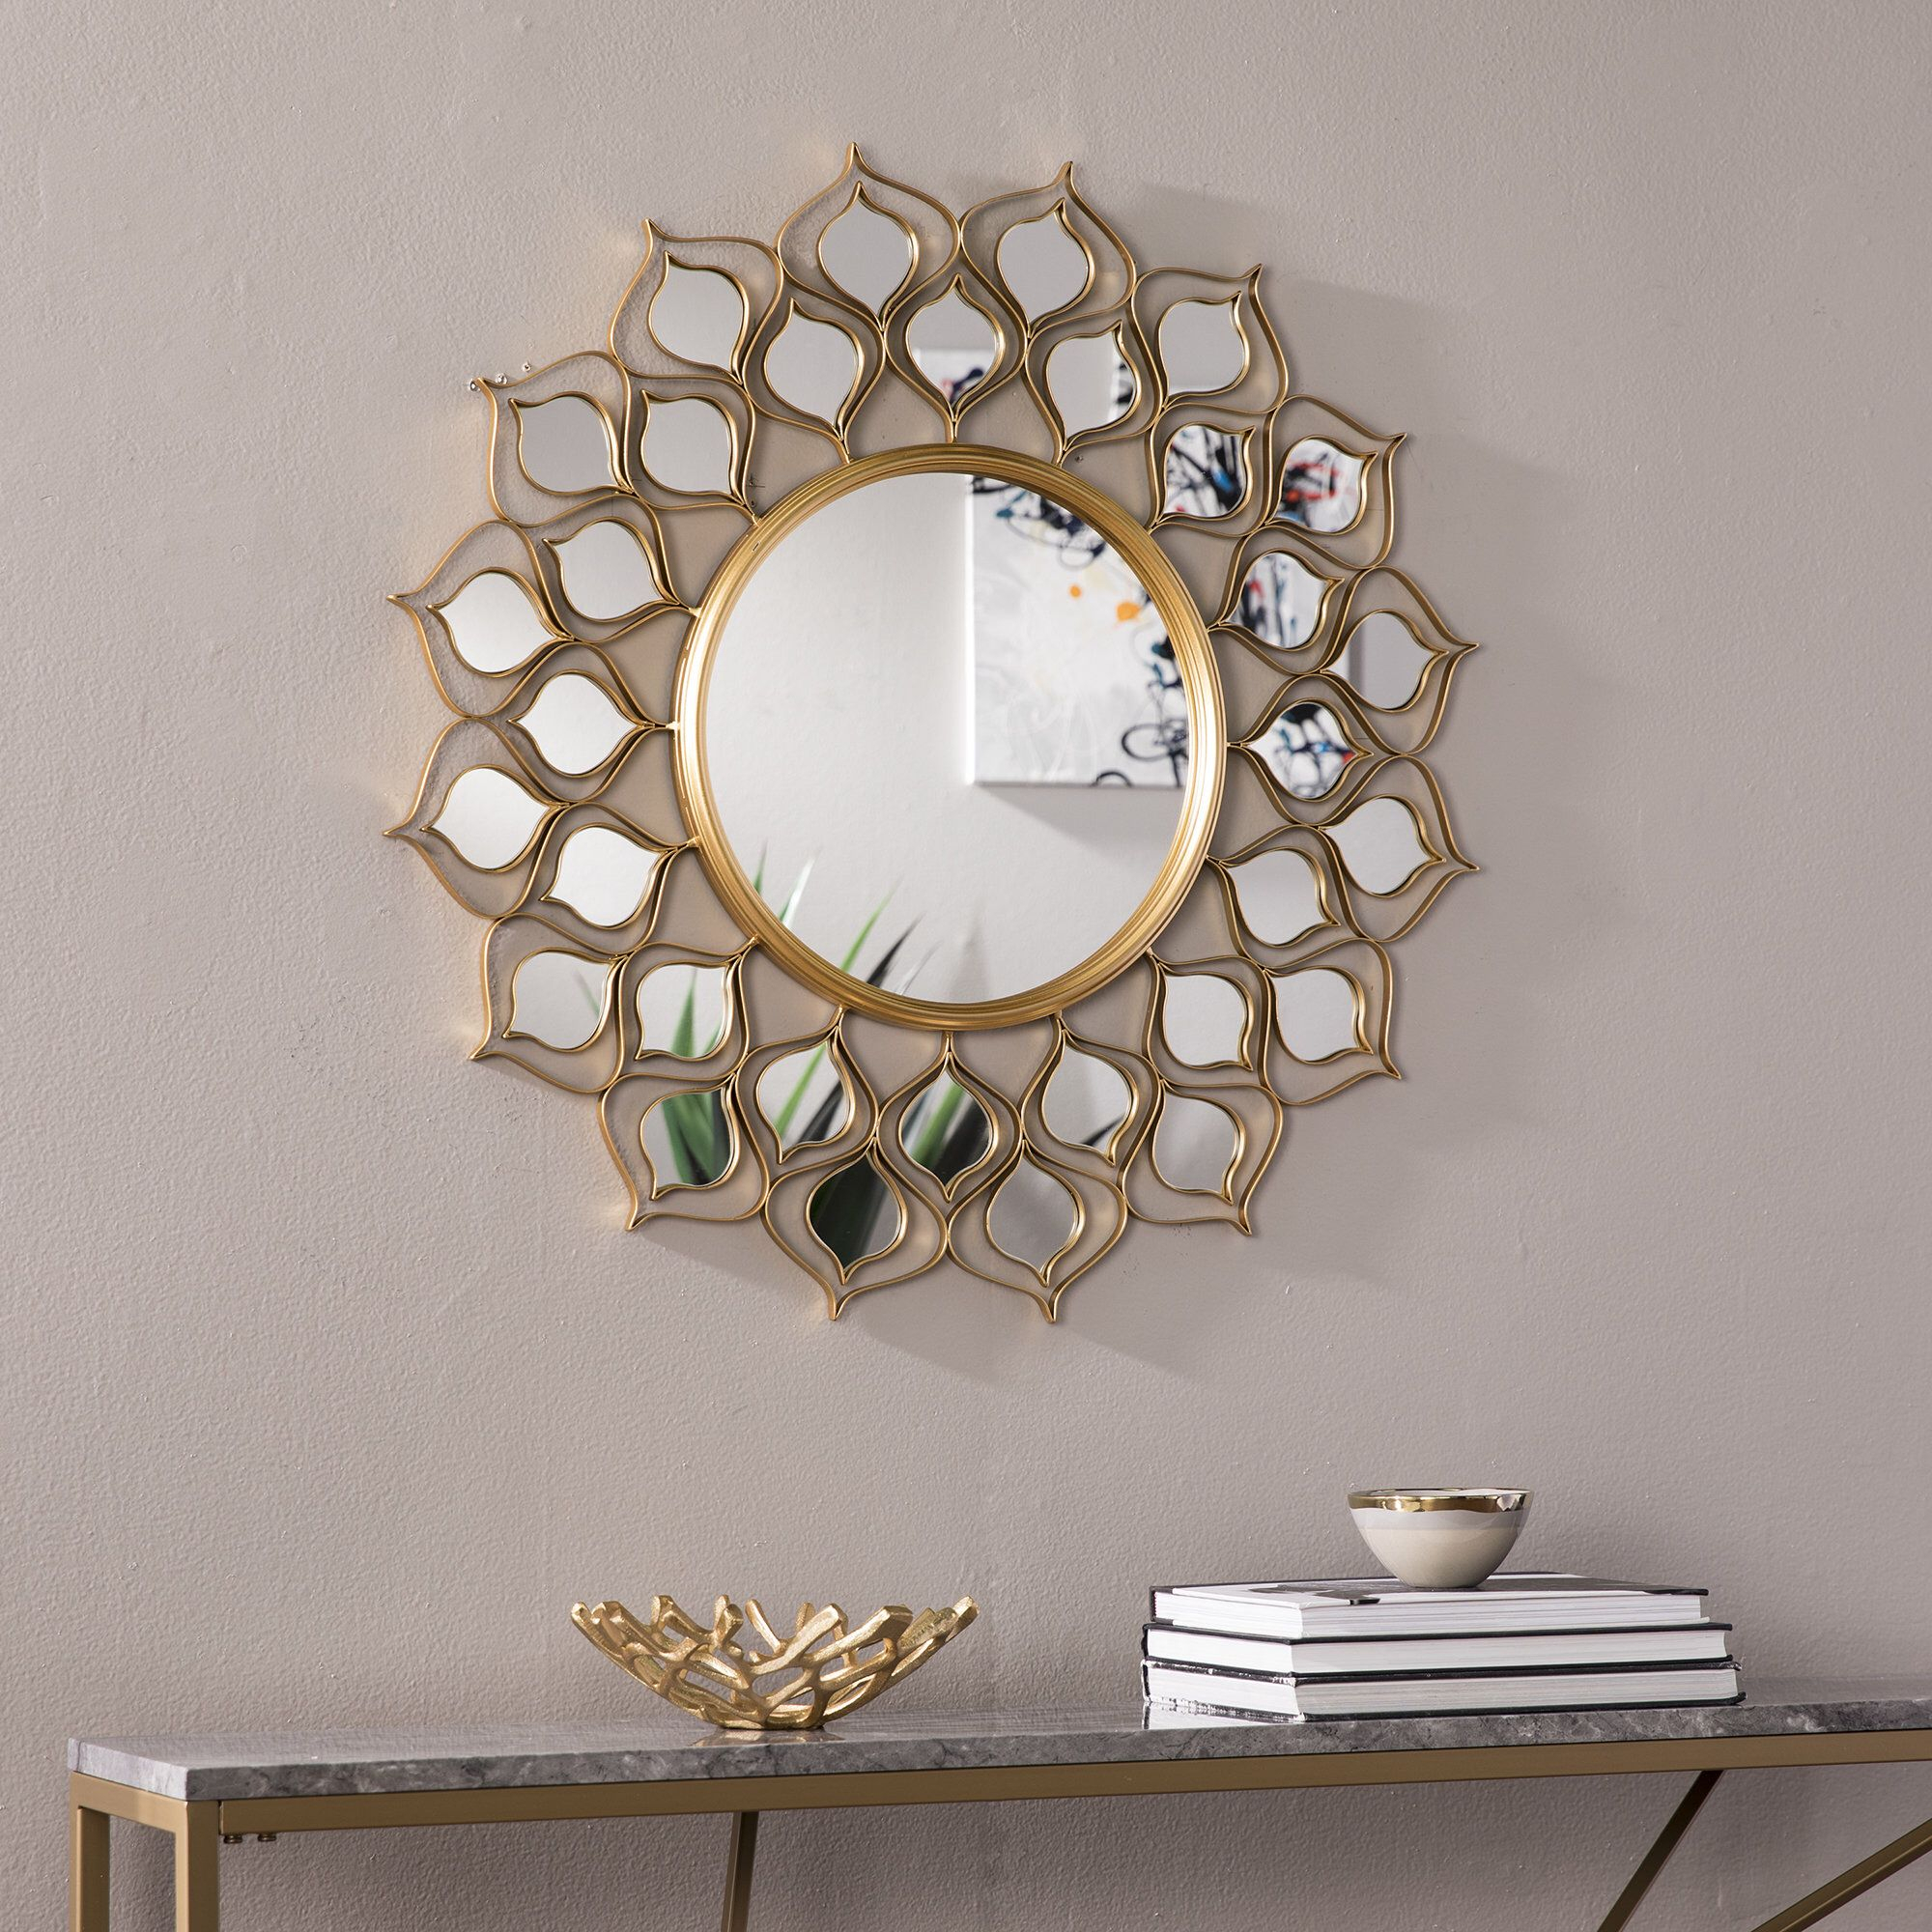 Salas Accent Mirror In 2019 | I2 B7 Teen's Islamic Bedroom for Kentwood Round Wall Mirrors (Image 28 of 30)